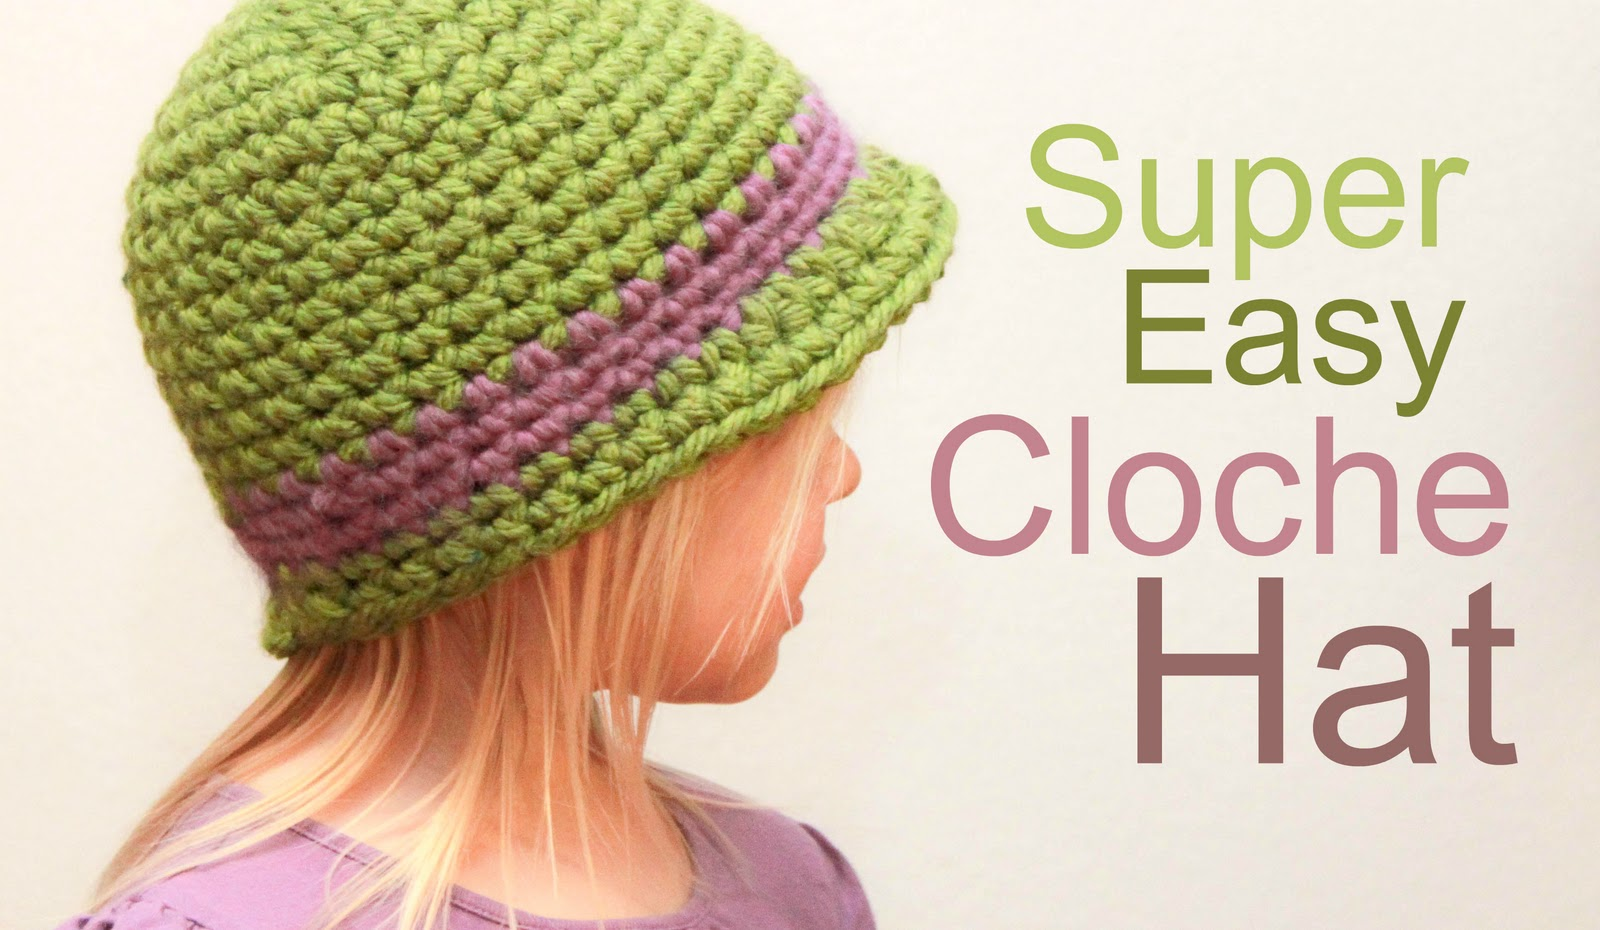 Crochet Cloche Hat Pattern Free Patterns For Crochet